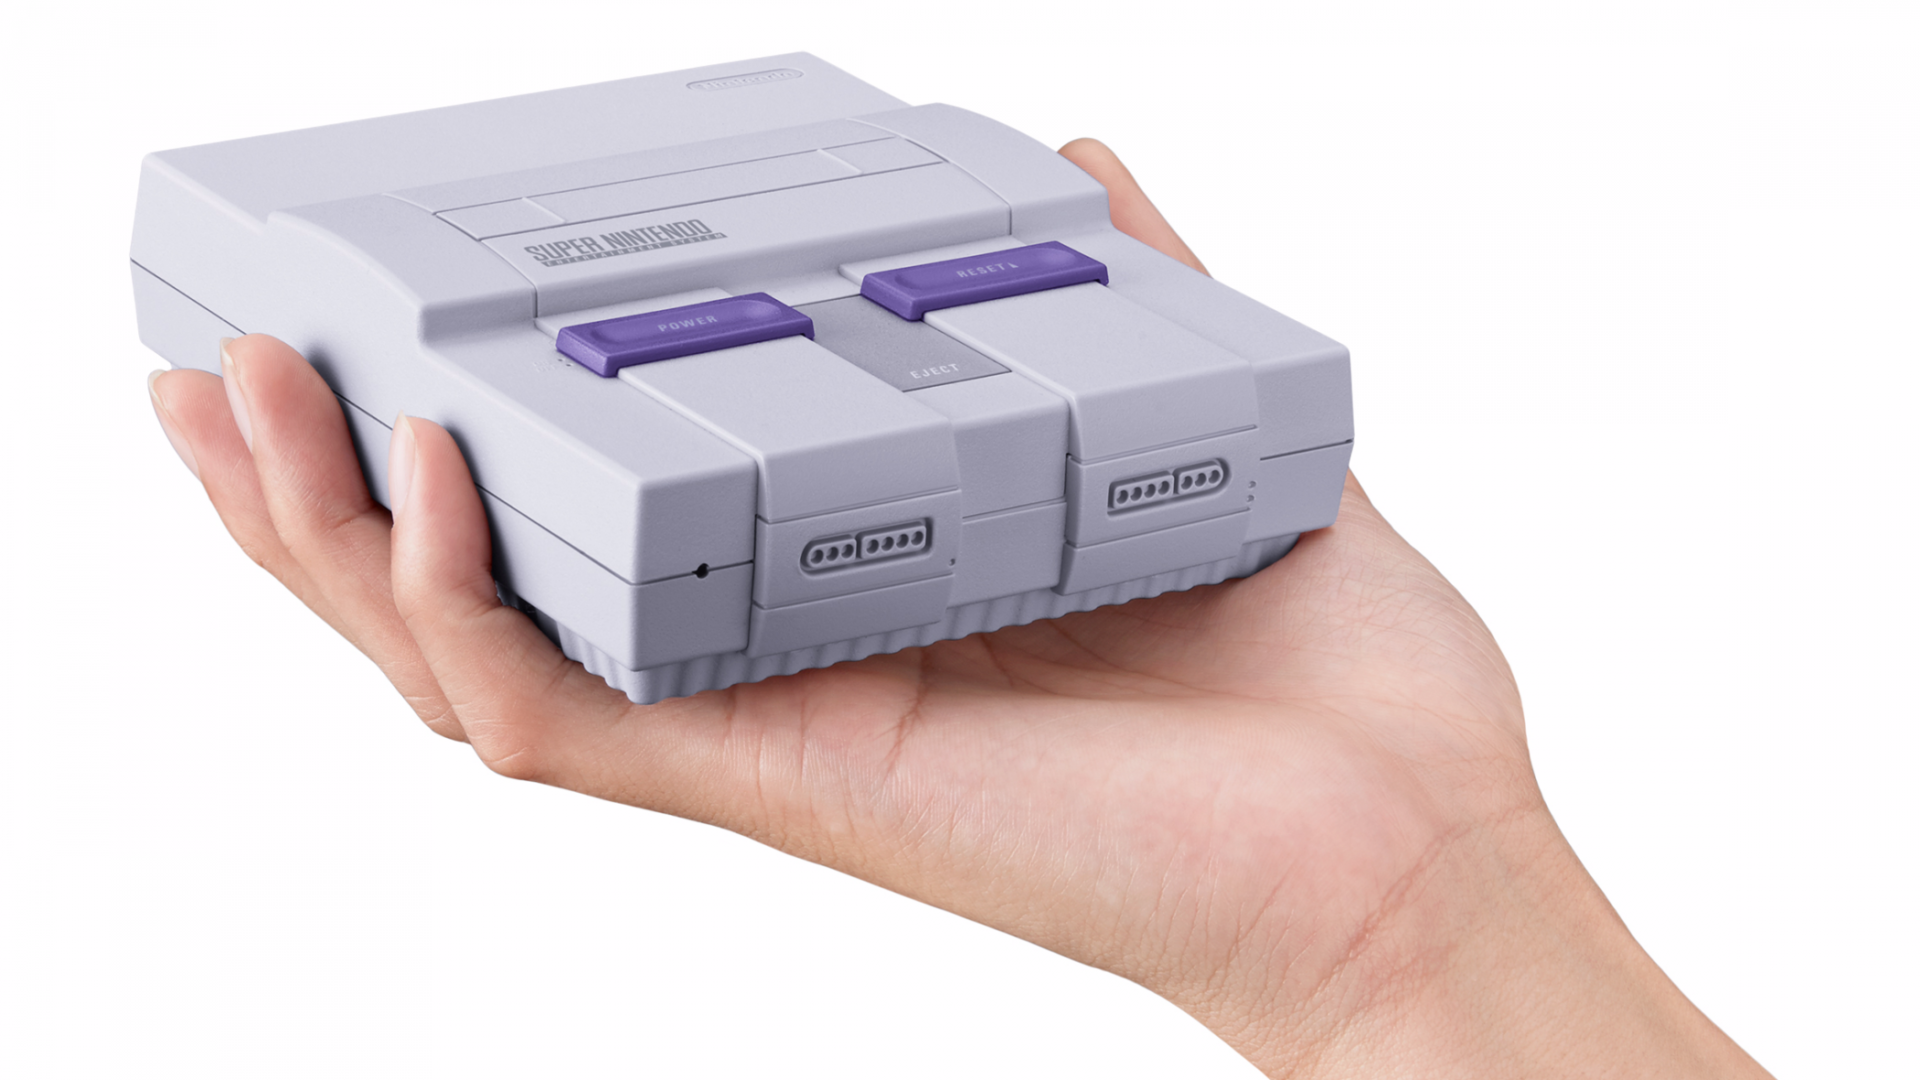 Super Nintendo Classic Edition Will Come Out Sept. 29, Mini SNES Will Retail for About $80